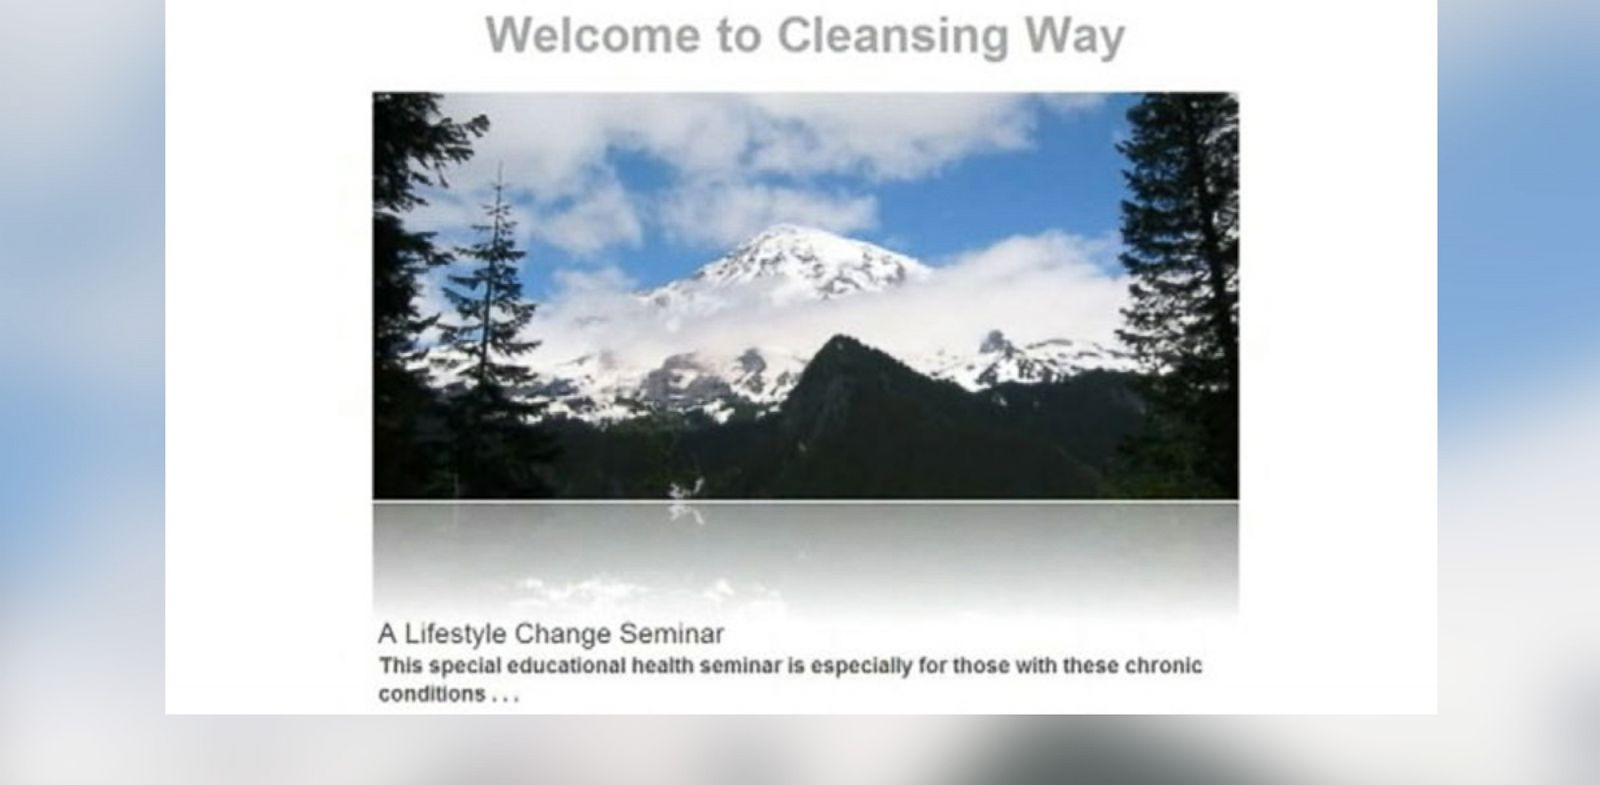 PHOTO: Pictured is a screengrab of the Cleansing Ways website.